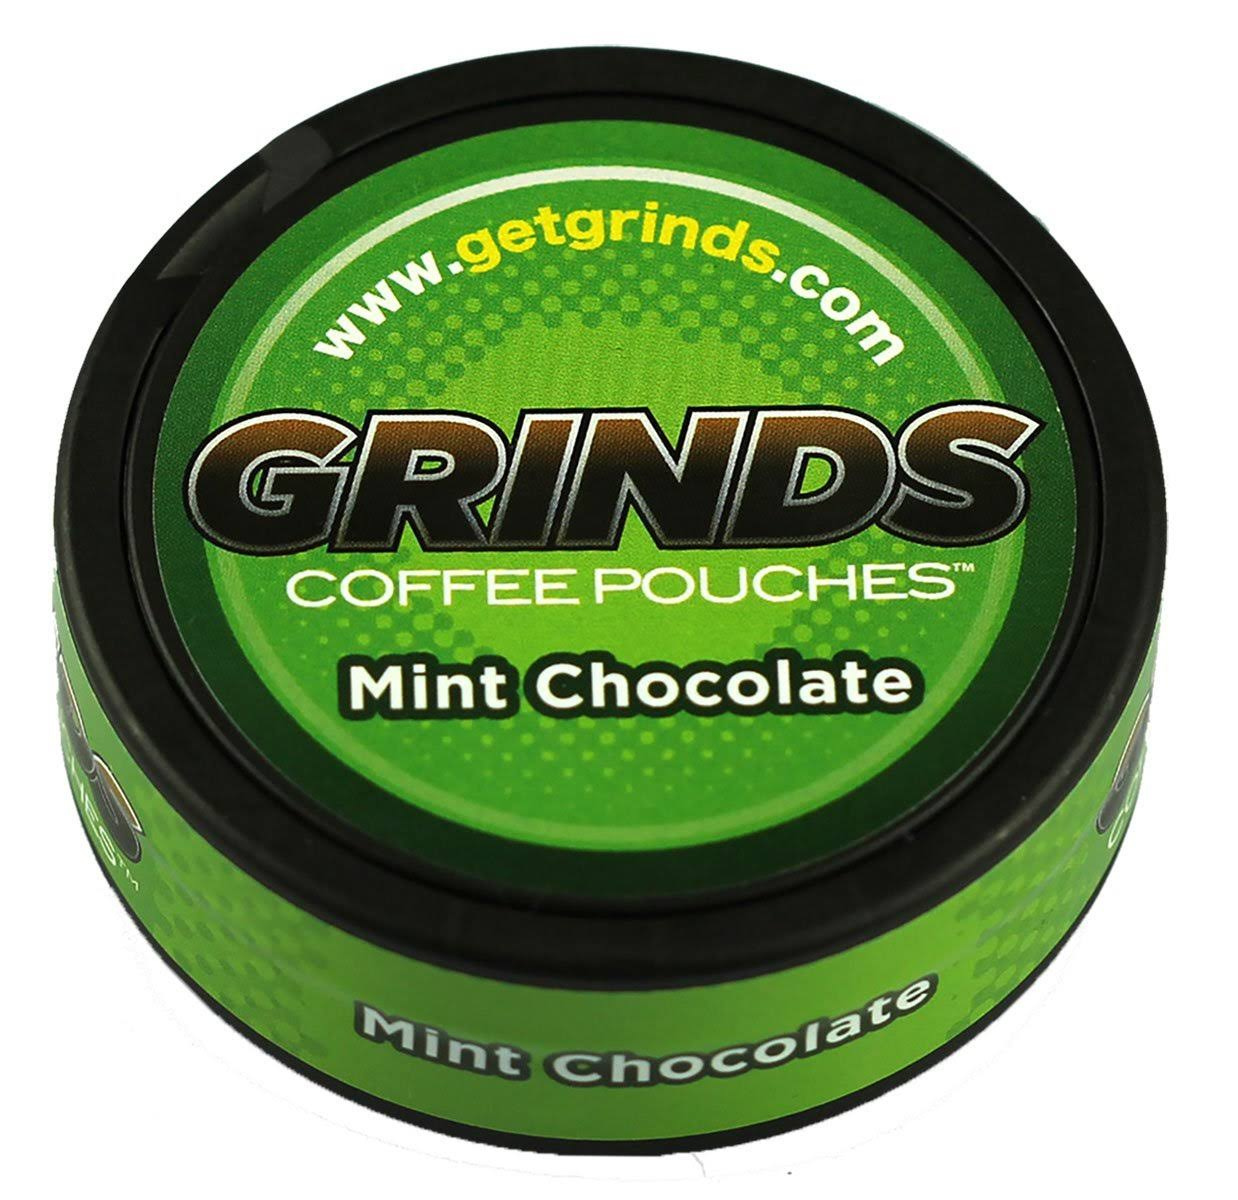 Grinds Coffee Pouches - Mint Chocolate